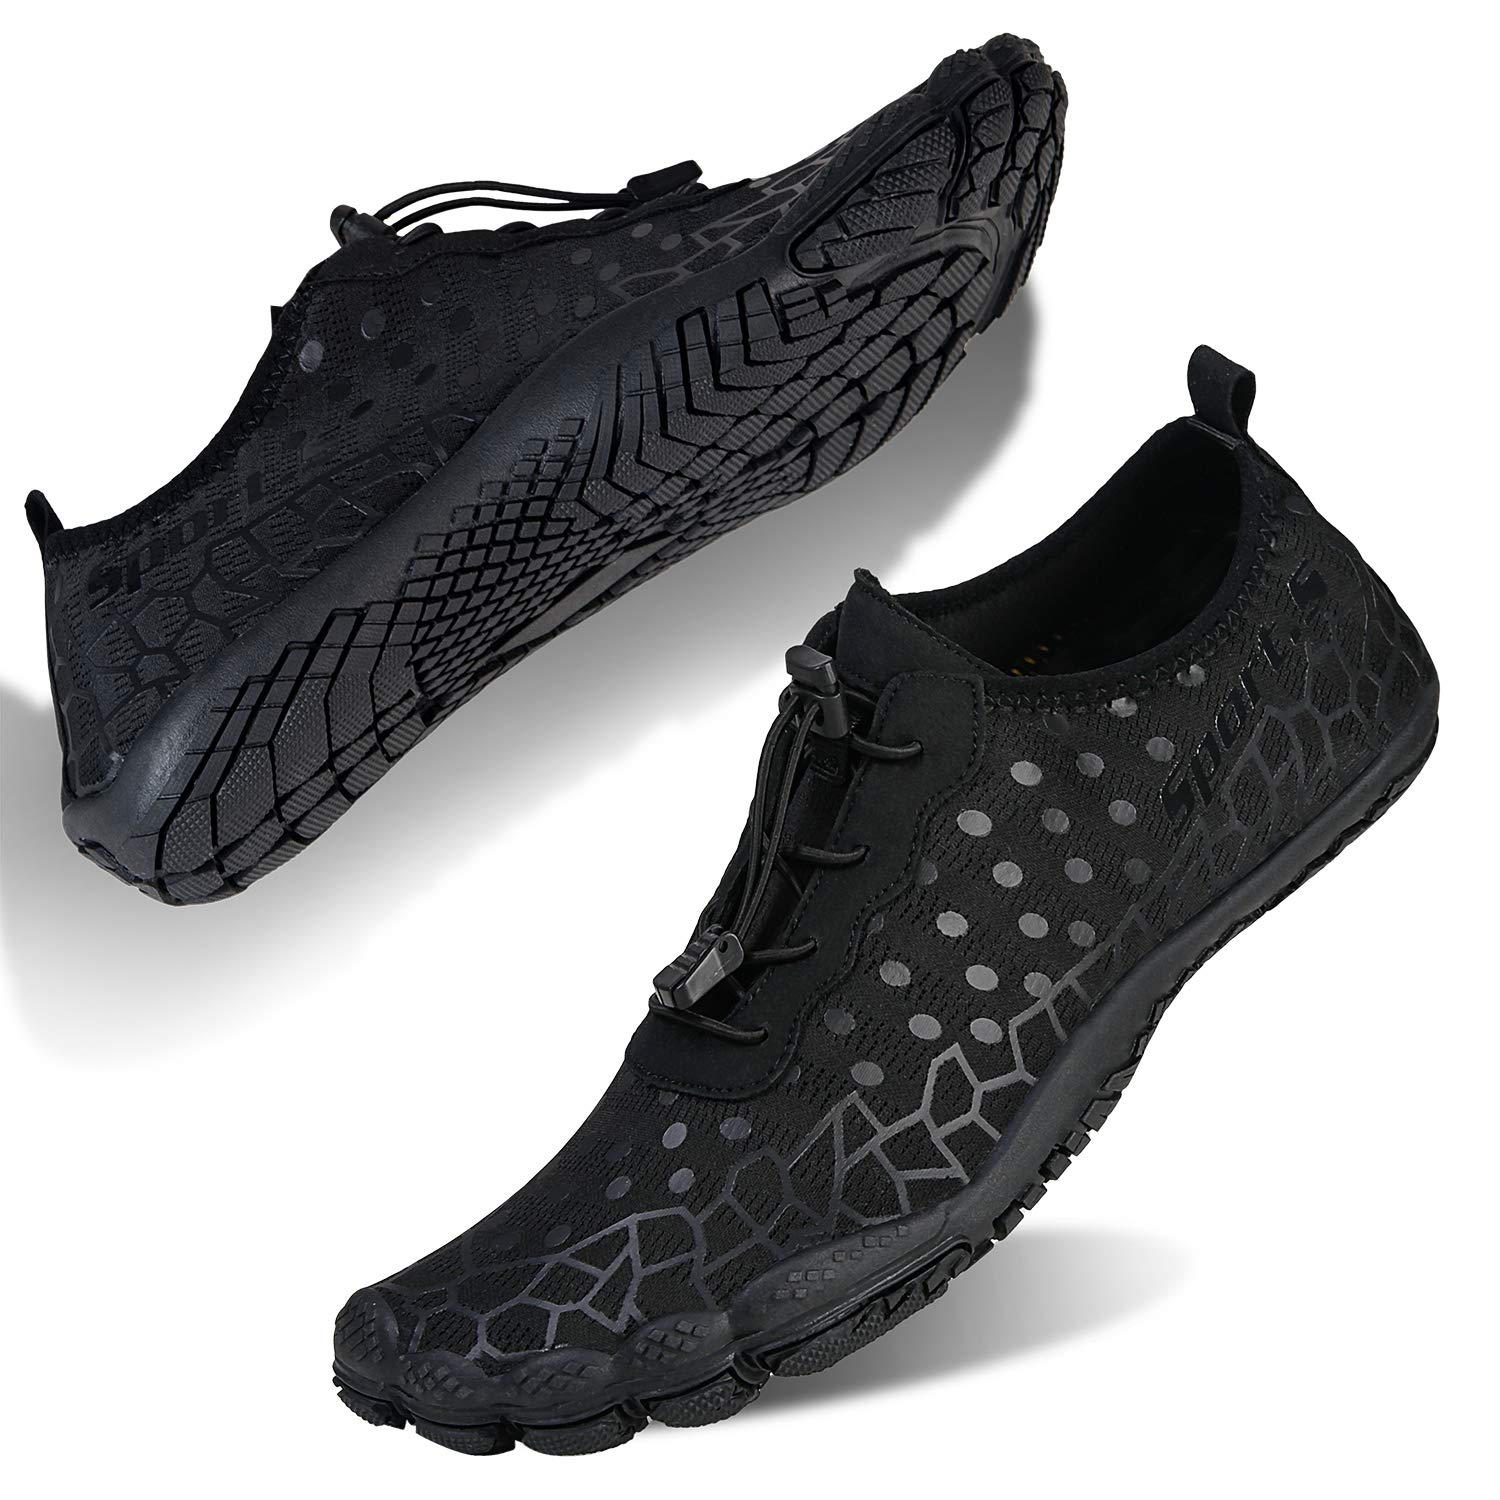 Water Shoes Mens Womens Barefoot Diving Swim Shoes Water Sports Non-Slip Aqua Shoes for Swim Pool, Beach,Hiking, Kayaking, Boating,Surfing